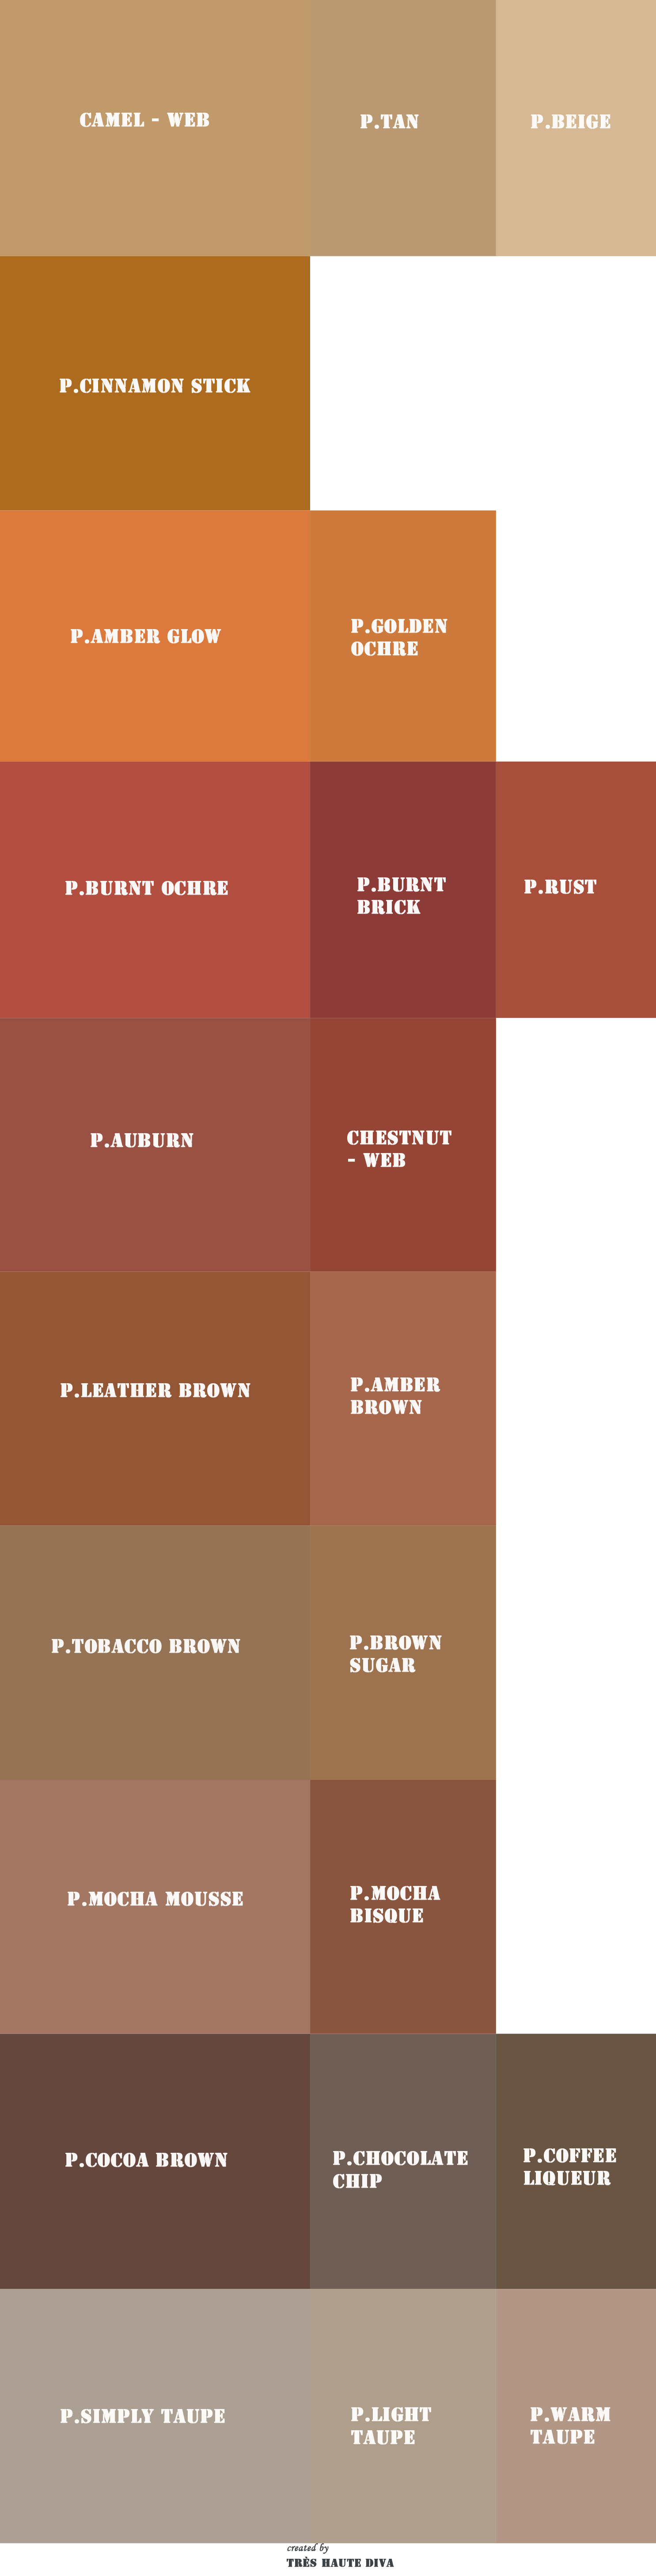 My Brown Pantone P And Web Web Reference Colors By The Way